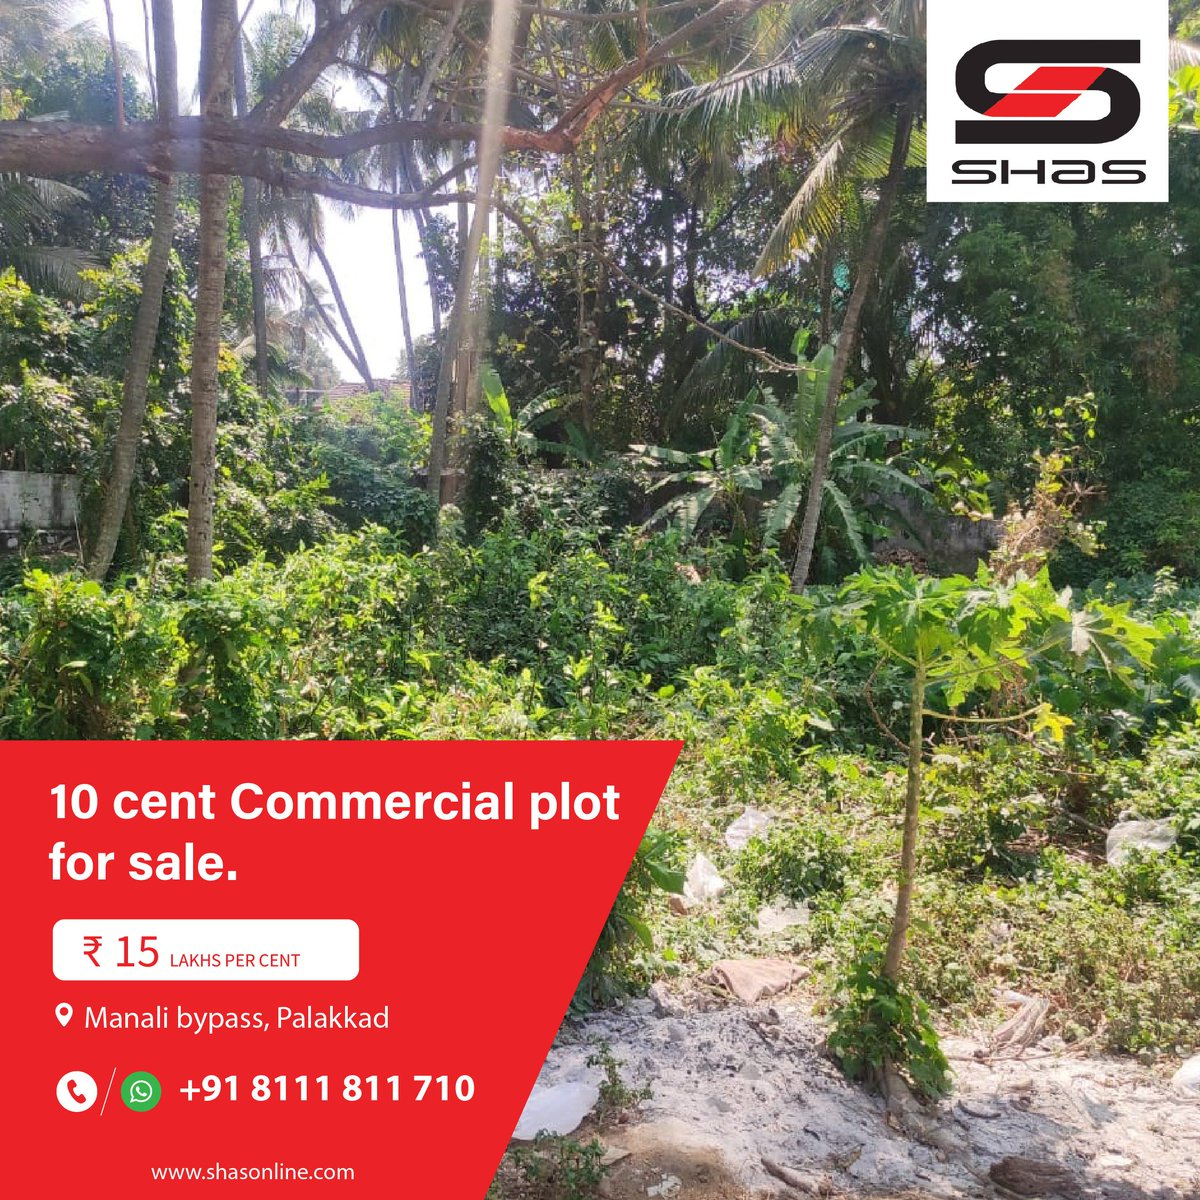 Commercial plot for sale in Manali bypass, Palakkad Kerala  For Enquiry Call/whatsapp: 81118 11710 Visit: https://t.co/llbPYDUNxC  #manali #palakkad #landforsale #realestate #realtor #realestateagent #home #property  #realestateinvestor #sold #homesforsale #plots #shasproperties https://t.co/INqOnuxXQs